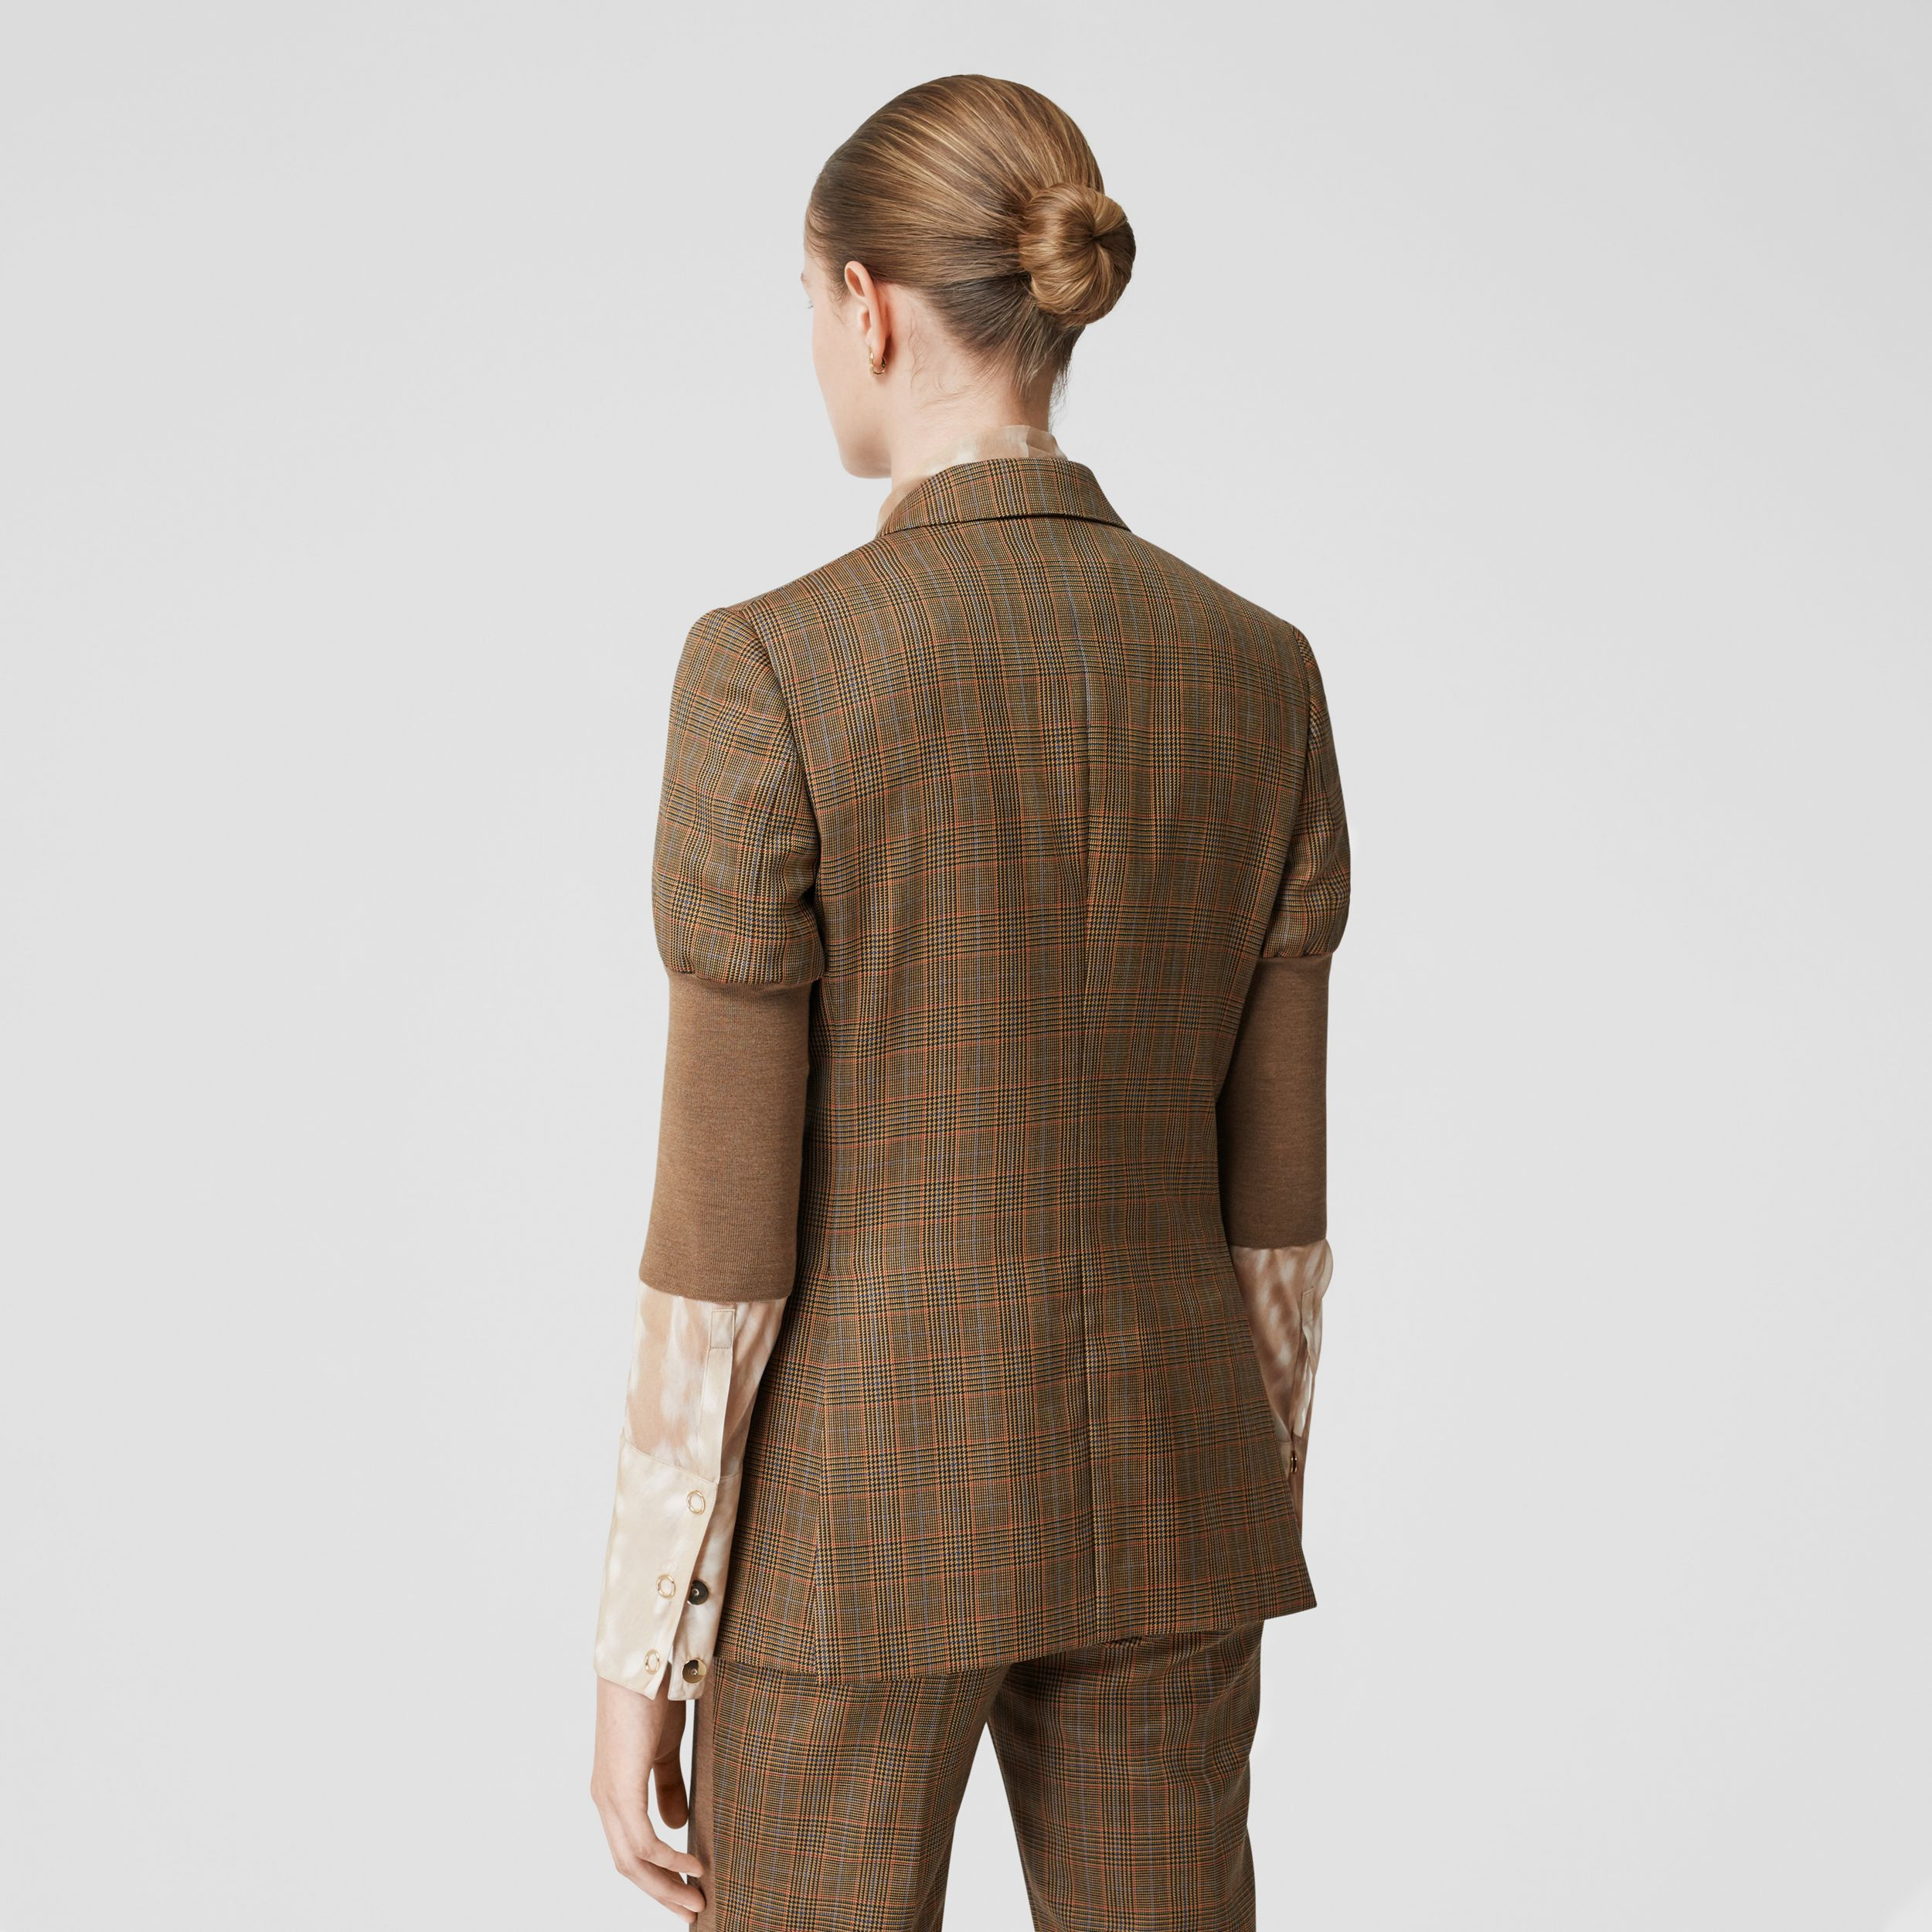 Knitted Sleeve Houndstooth Check Wool Tailored Jacket in Fawn - Women | Burberry - 3